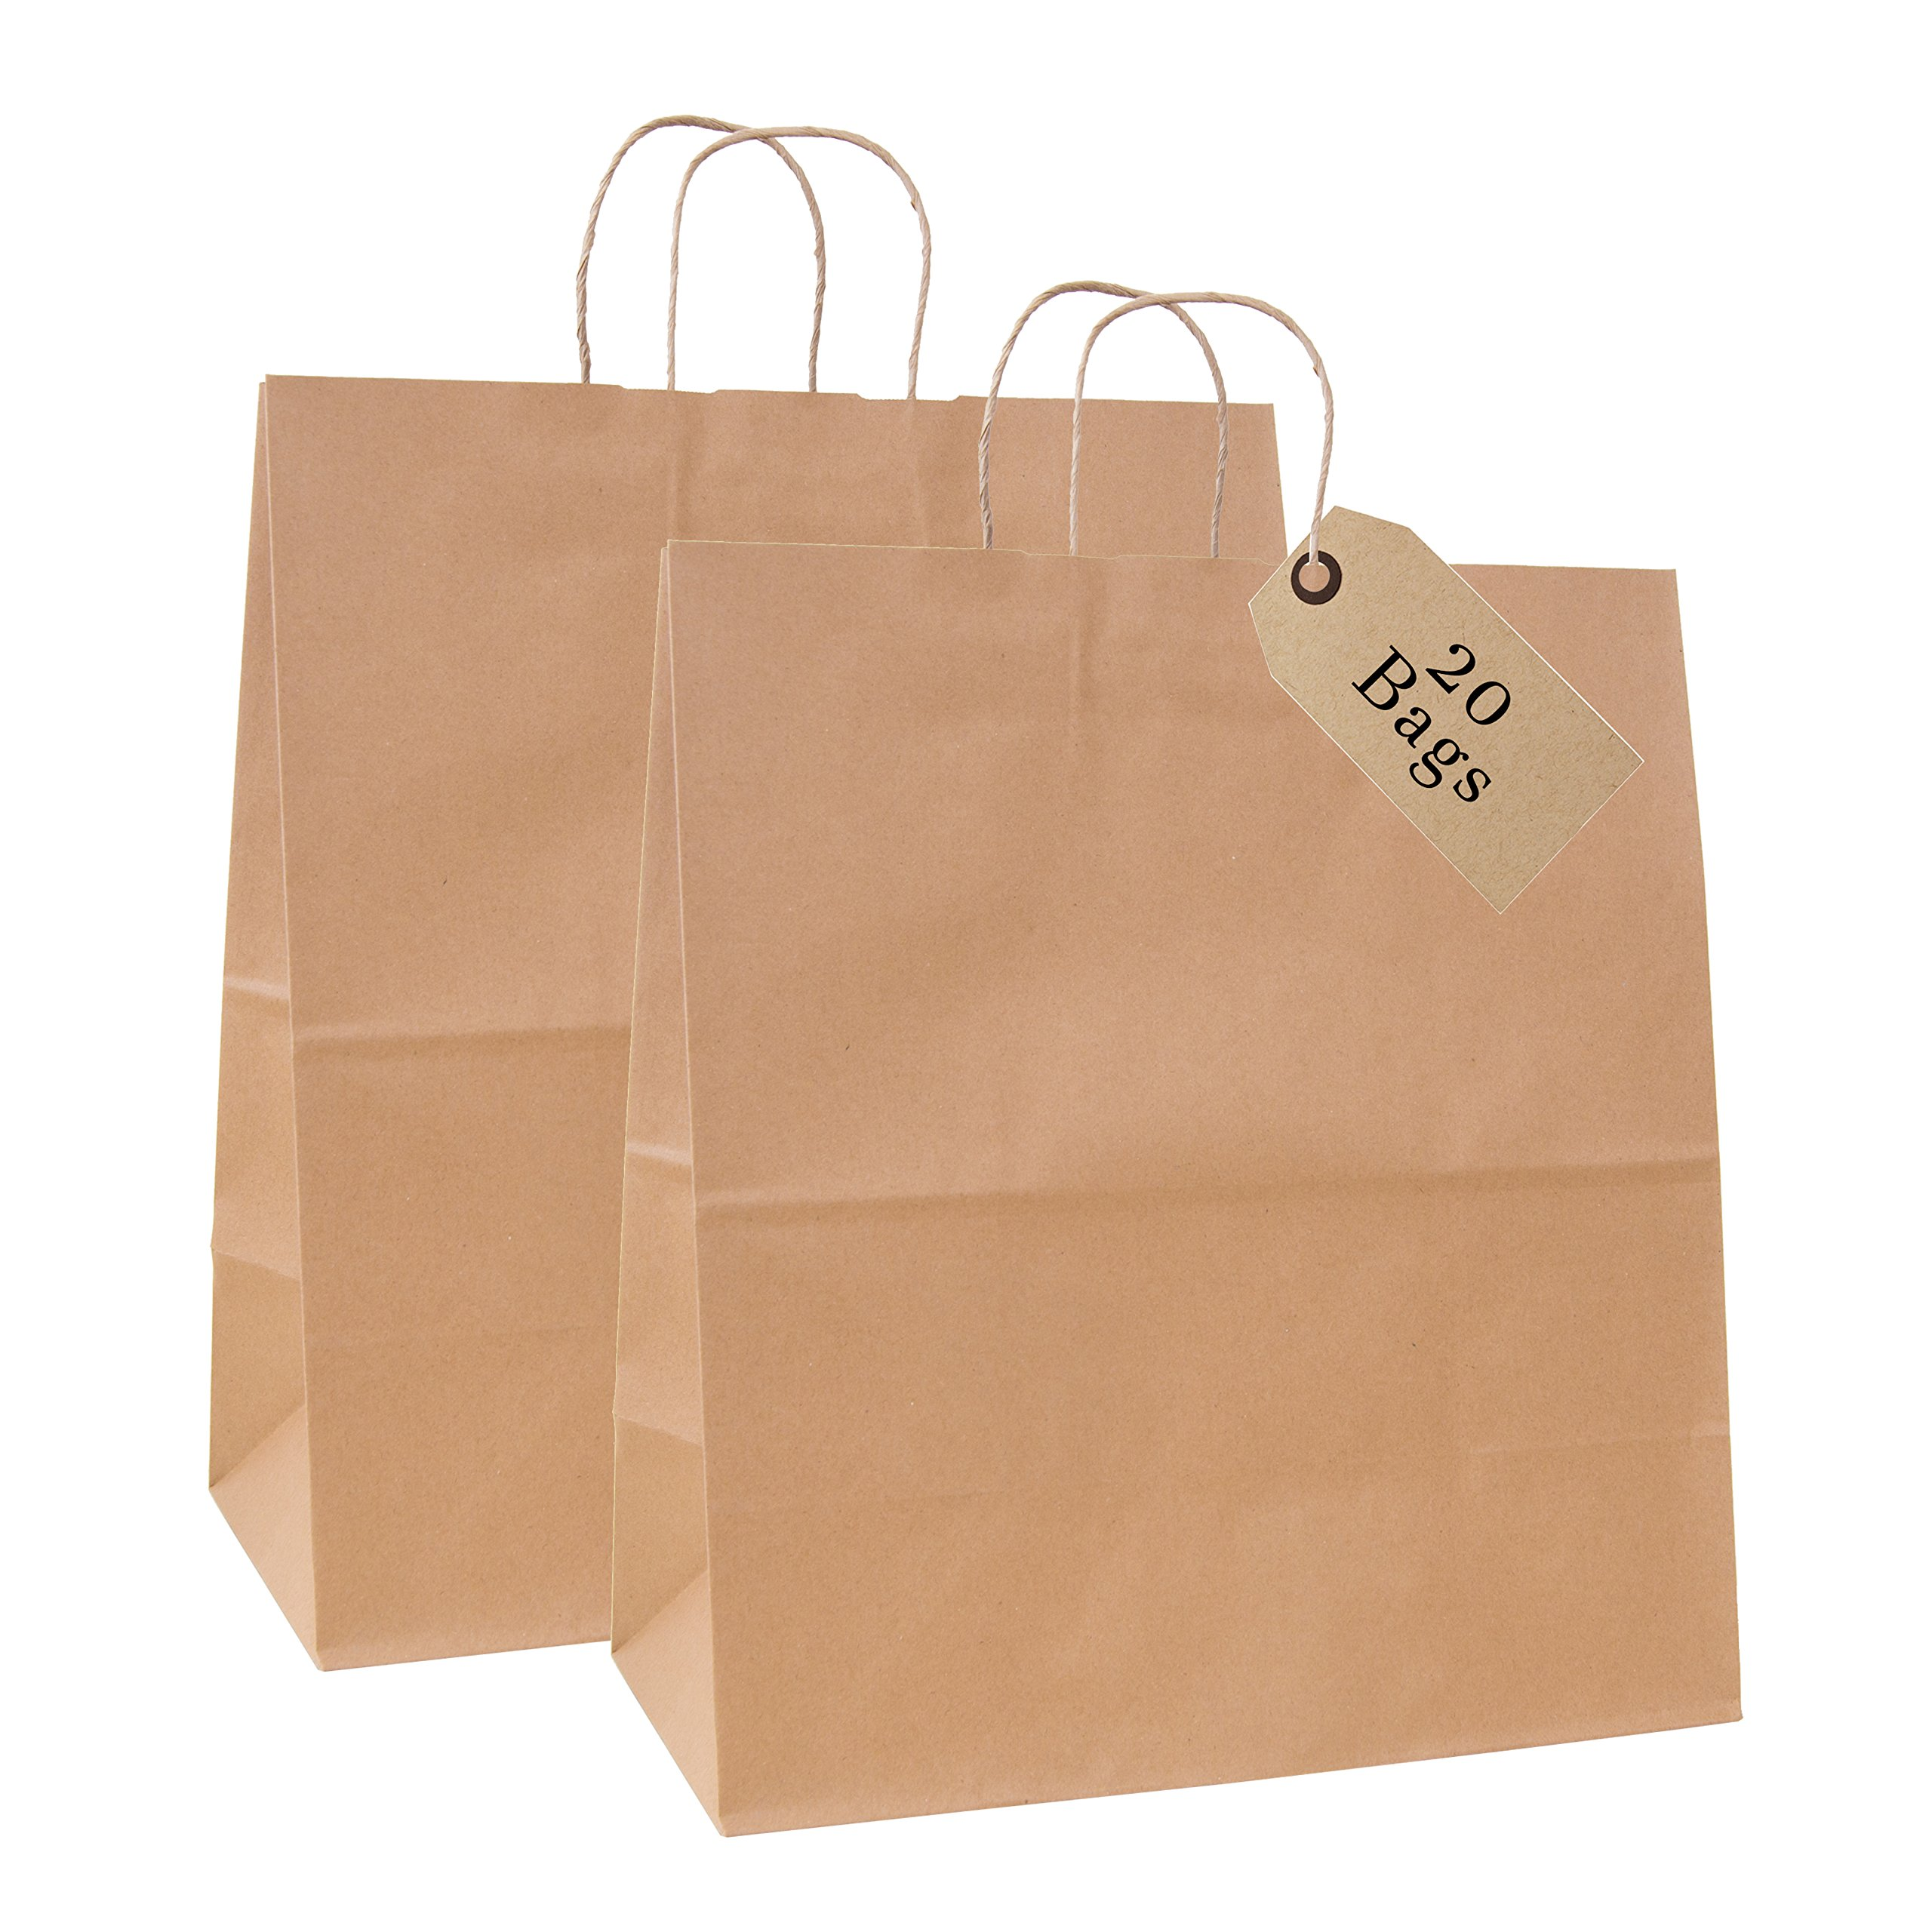 Incredible Packaging - 18'' x 7'' x 18'' Jumbo Kraft Paper Bags with Handles for Shopping, Retail and Merchandise. Strong and Reusable - 80 Paper Thickness- 100% Recycled (20, Brown)